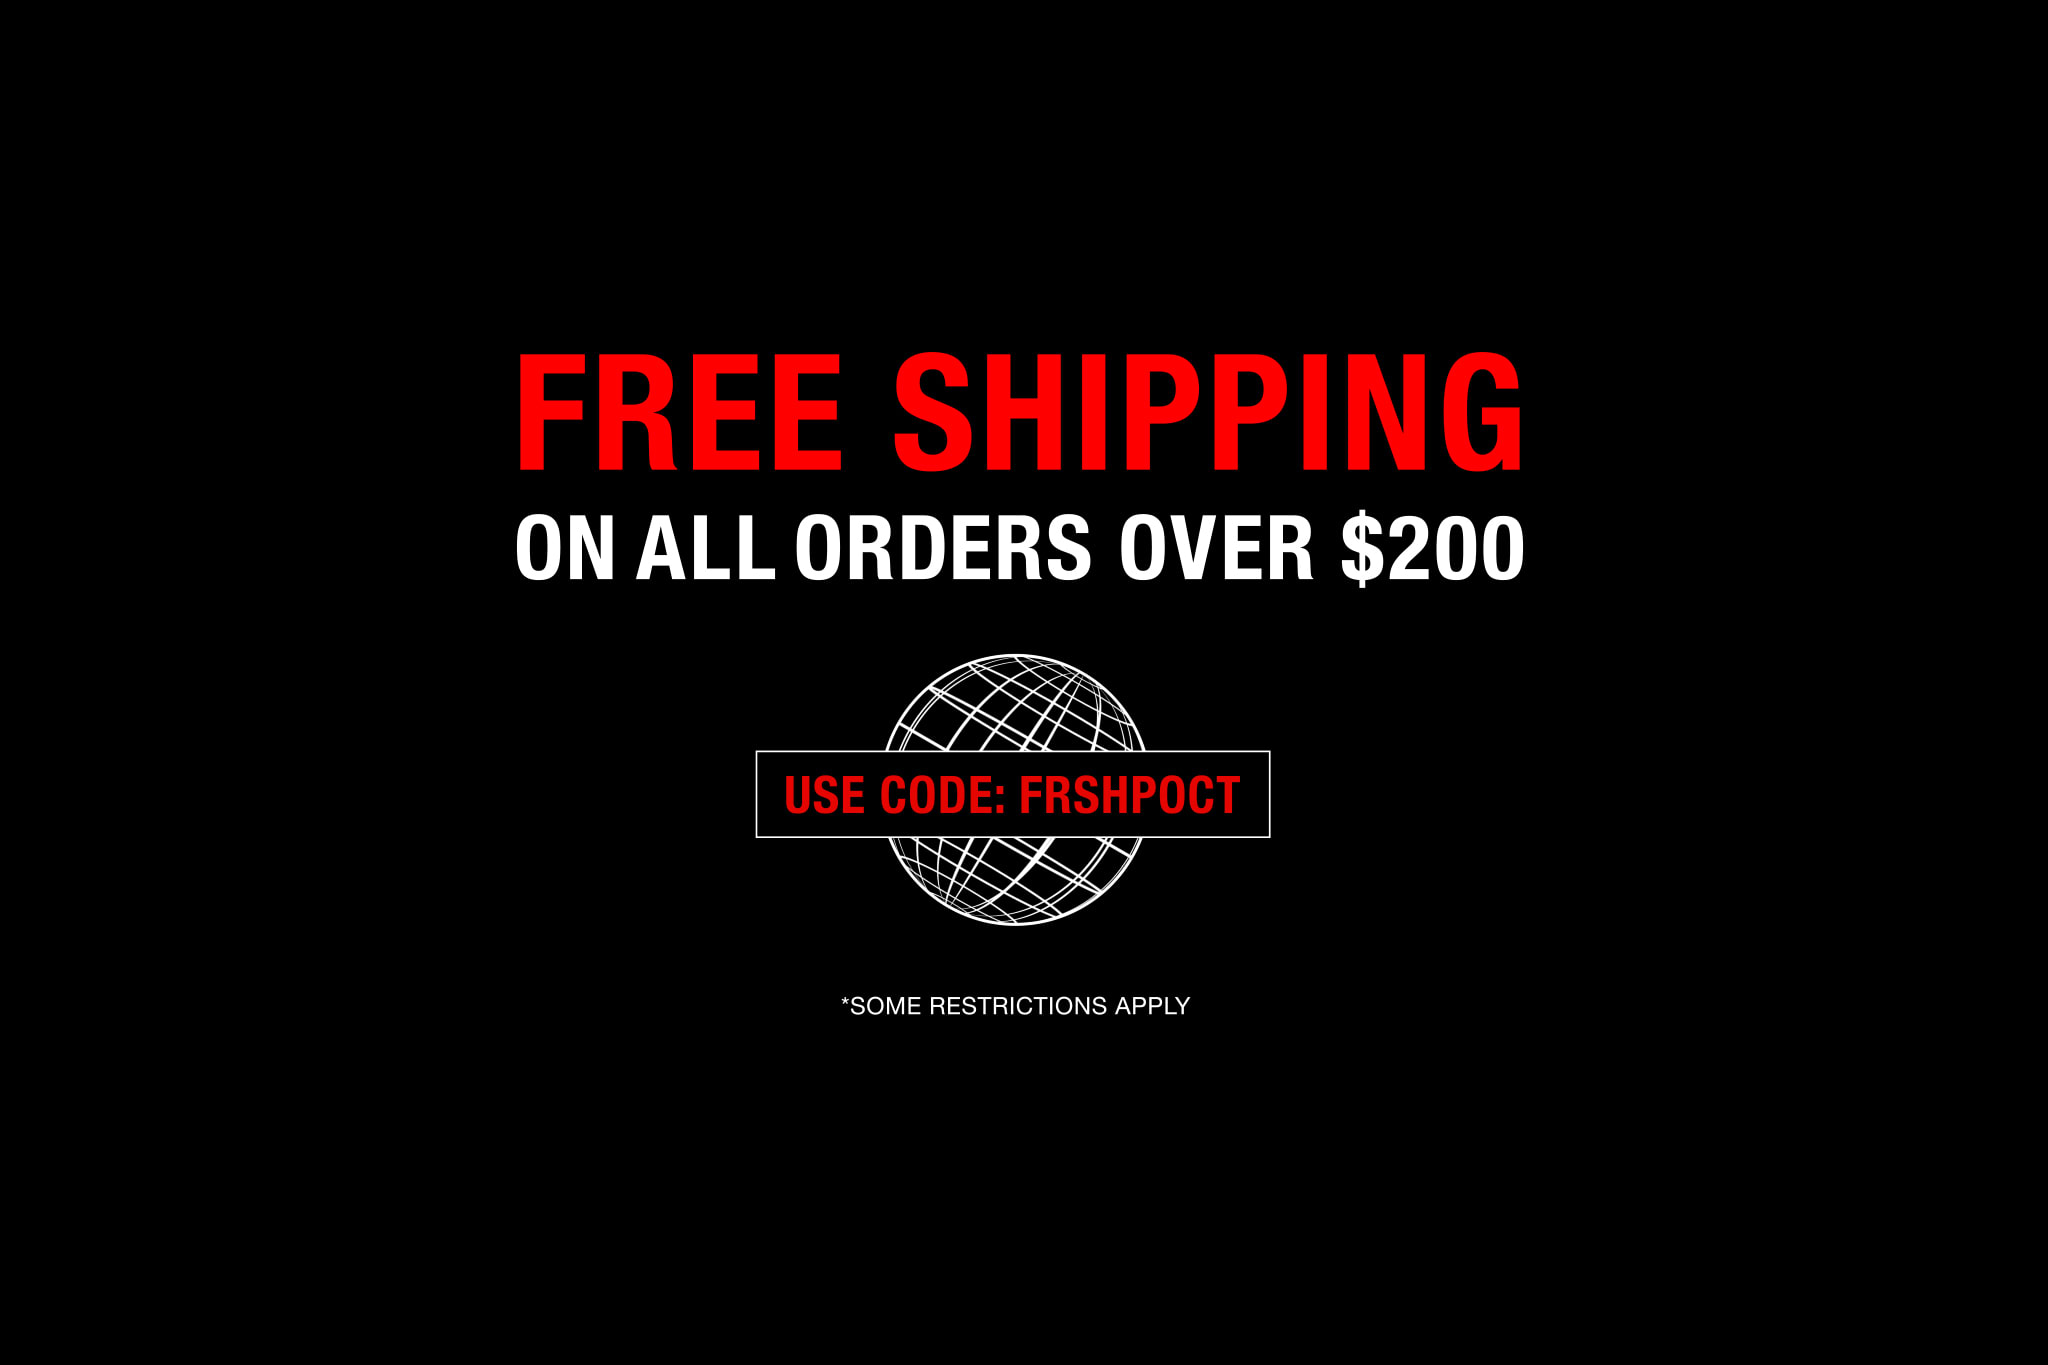 786e71f78d8 Free Worldwide Shipping on all orders over $200.00 | HAVEN